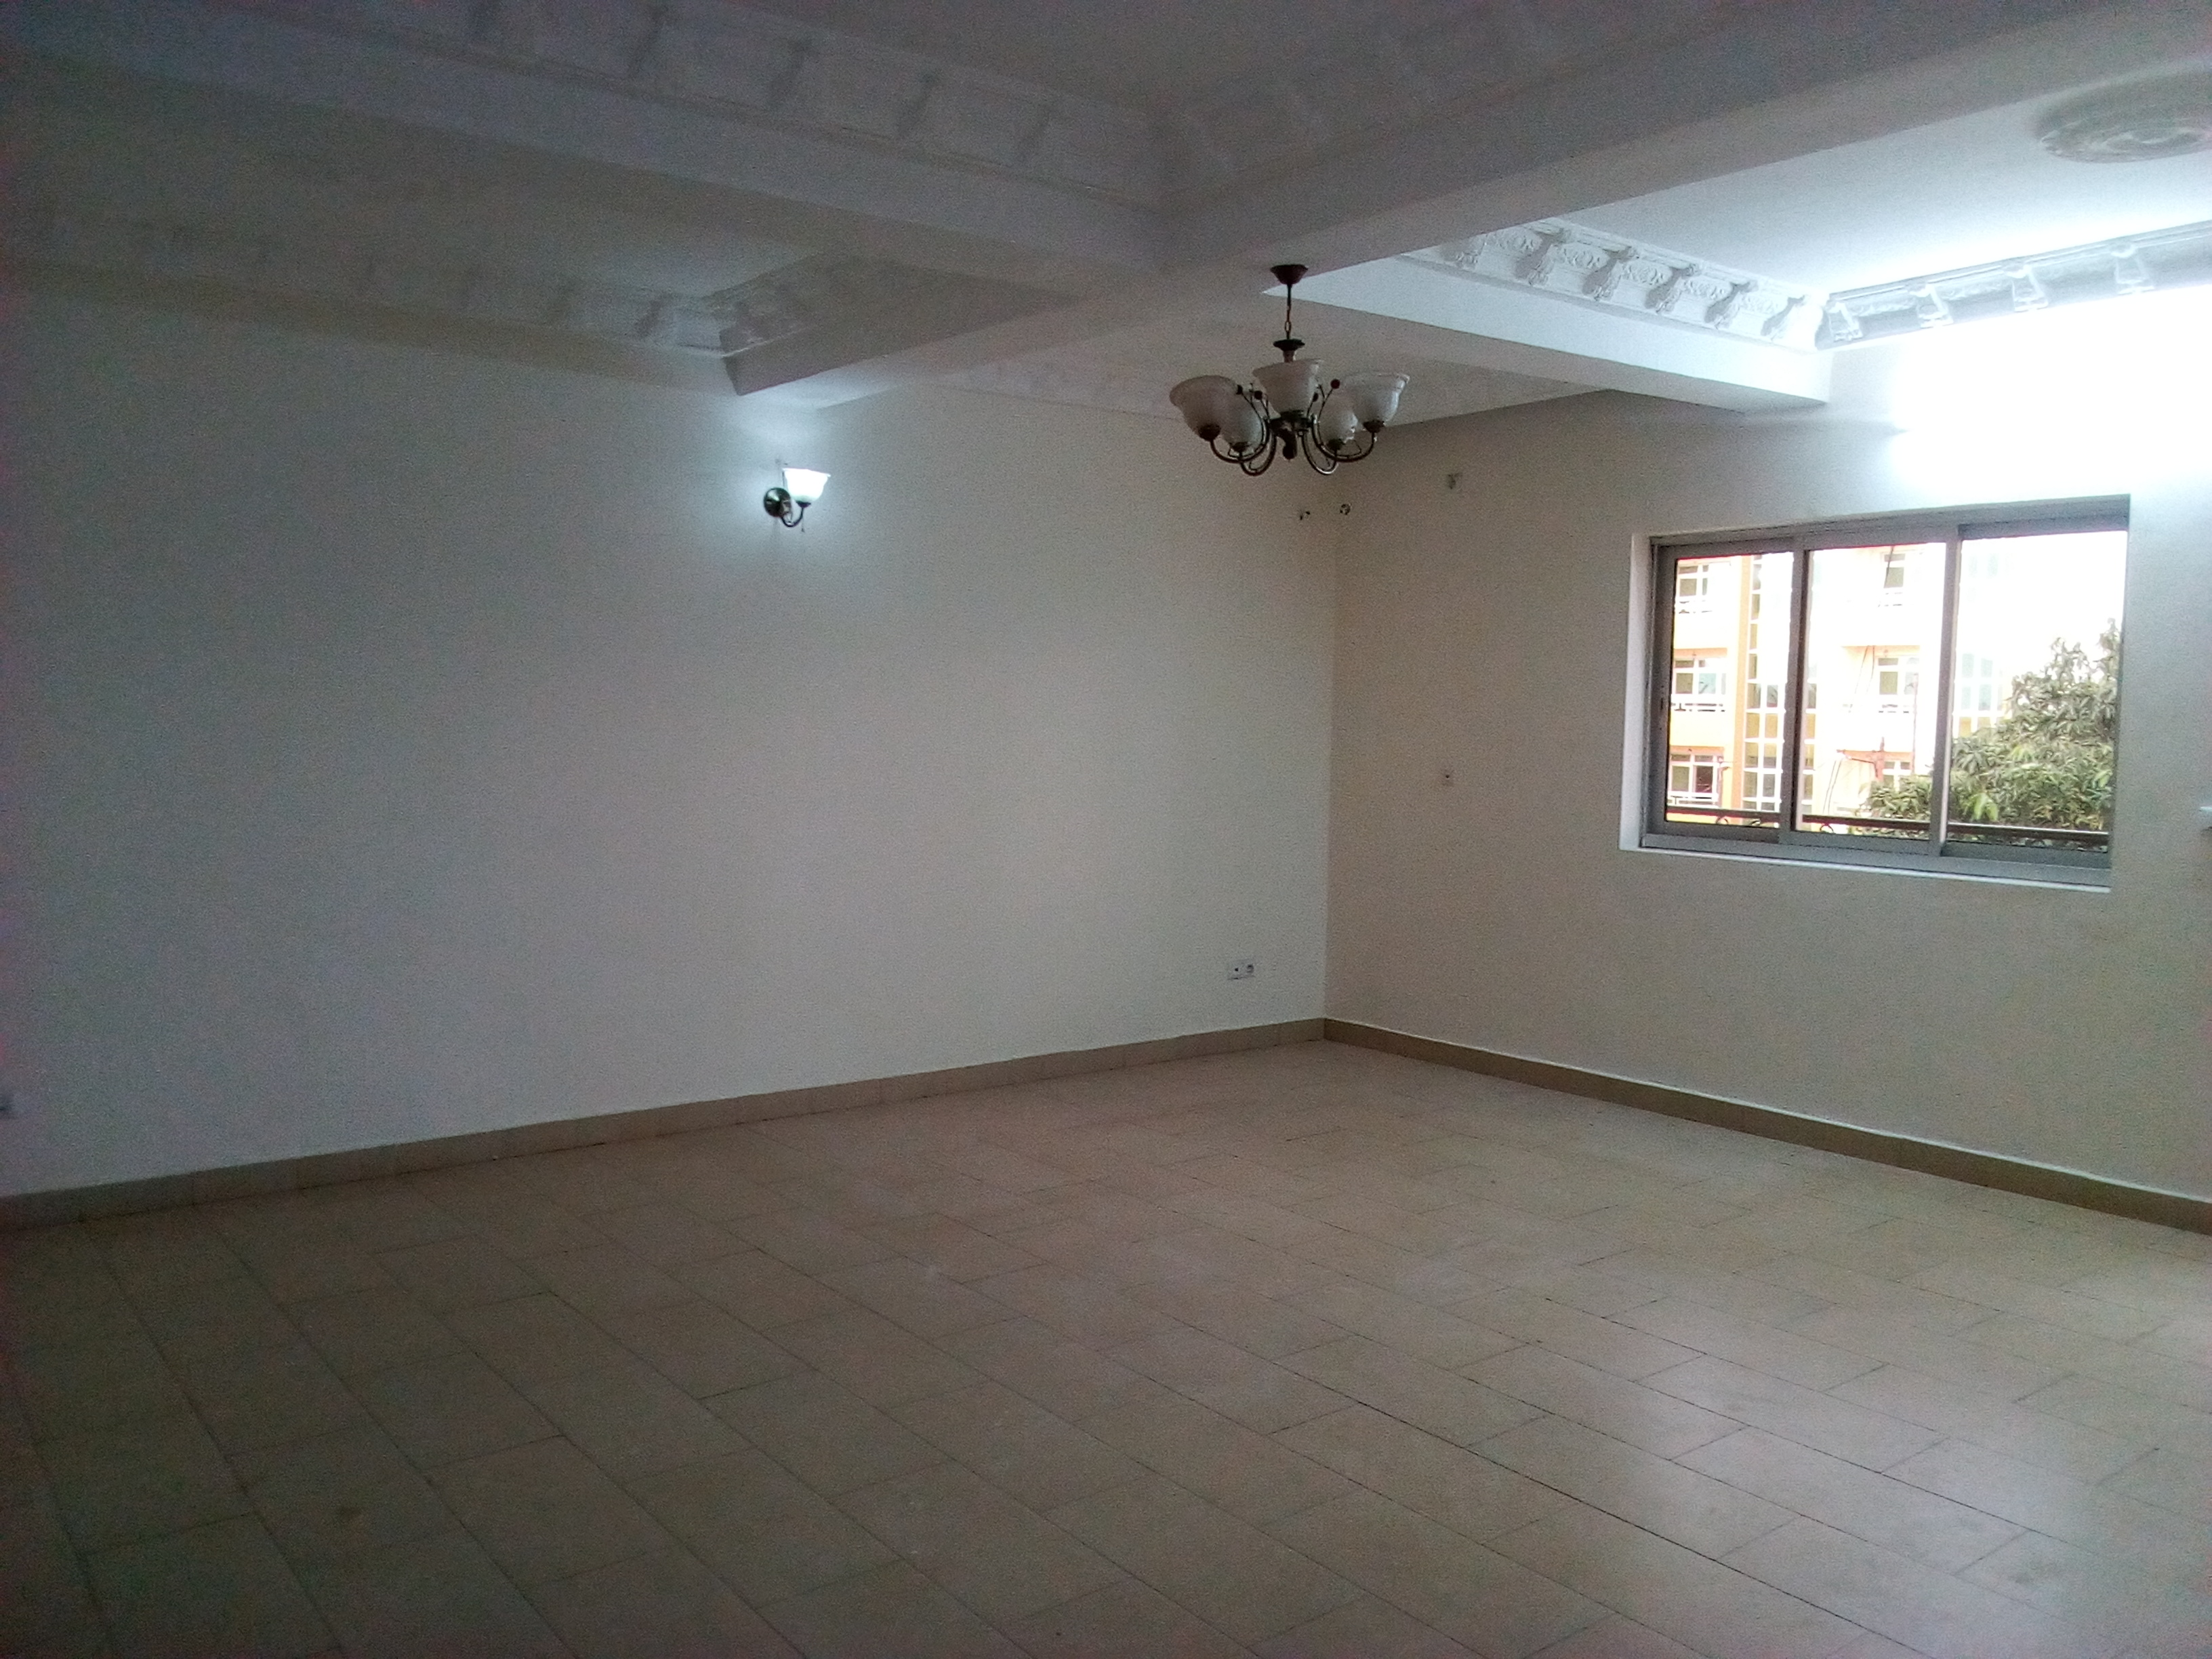 Apartment to rent - Yaoundé, Mfandena, avenue foe - 1 living room(s), 2 bedroom(s), 2 bathroom(s) - 300 000 FCFA / month